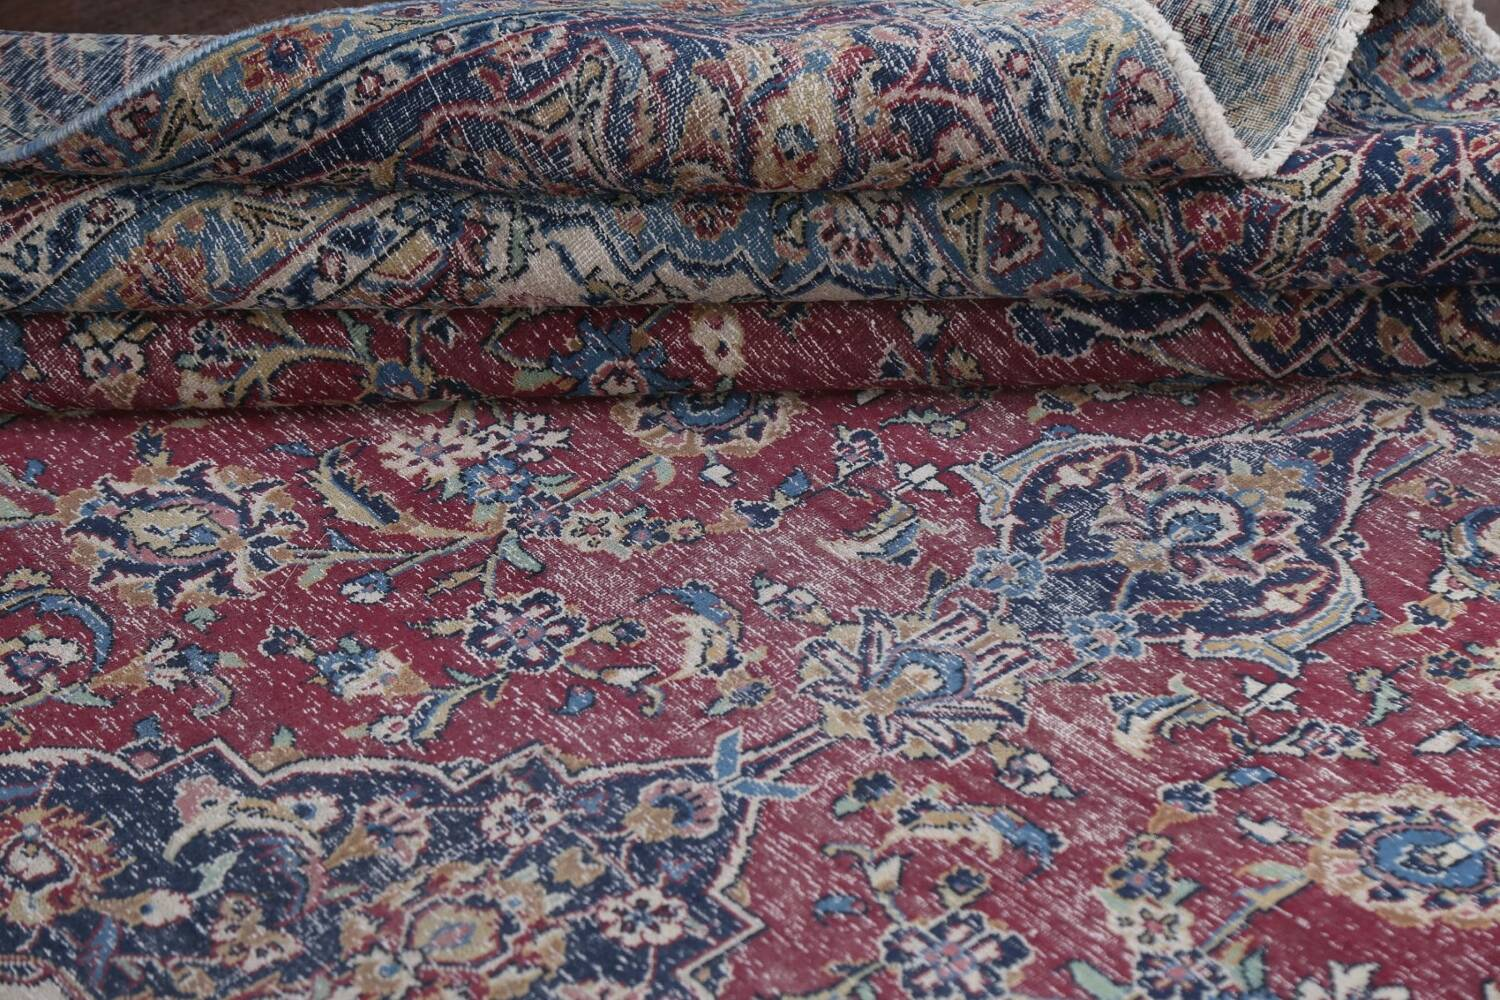 Antique Traditional Kashan Persian Rug 9x12 image 16